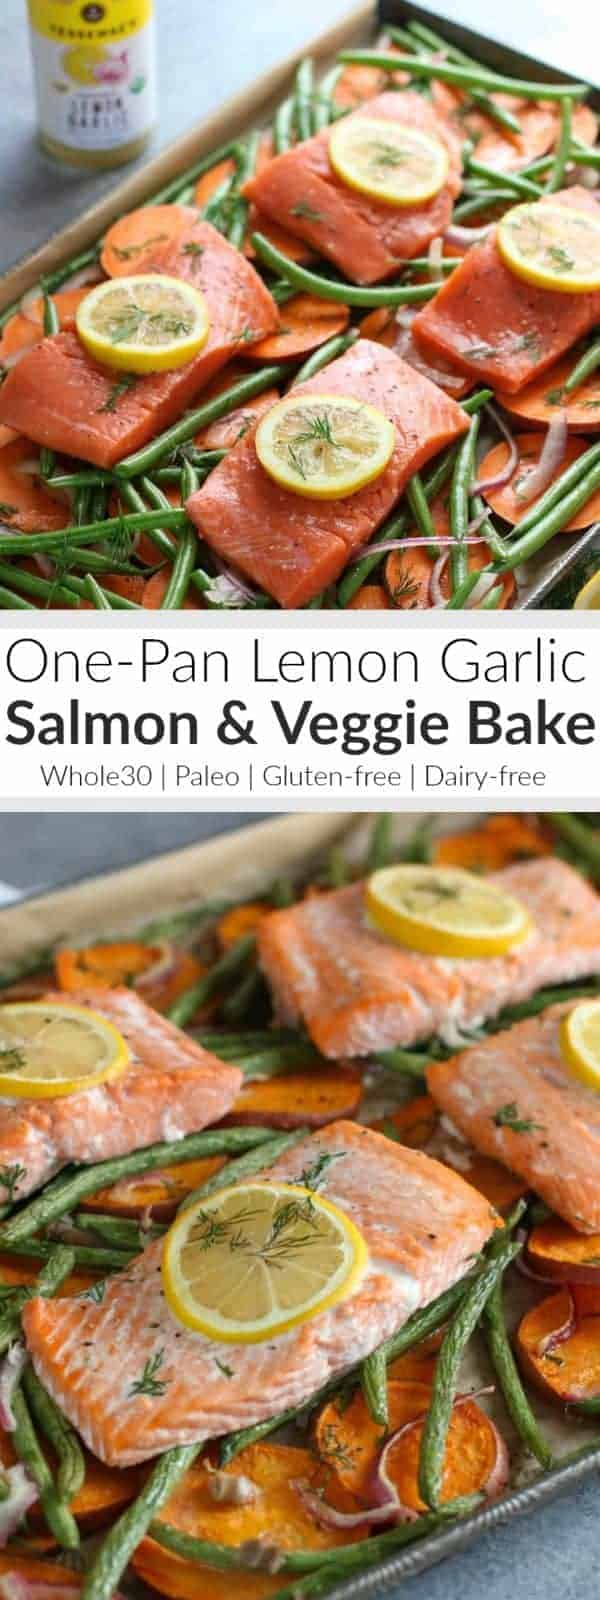 One Pan Salmon & Veggie Bake | Make life easier this week with our One-Pan Salmon and Veggie Bake. Just one pan and minimal clean up! Whole30 | Gluten-free | Dairy-free | Paleo | https://therealfoodrds.com/one-pan-salmon-and-veggie-bake/